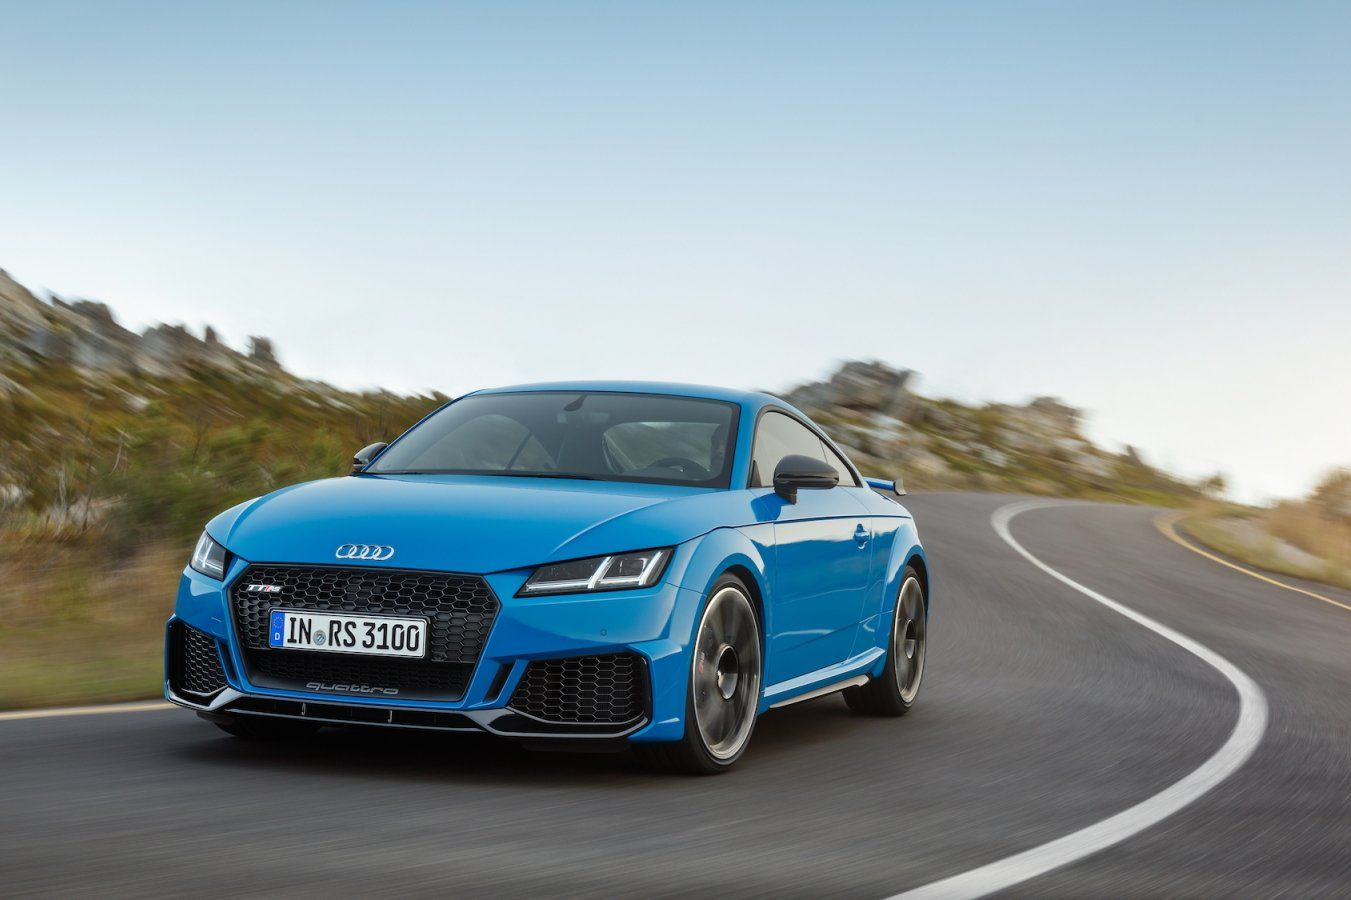 Have A Look At This Amazing Audi Tt Rs Is This The Best Car Audi Has For Sale Right Now Ttrs Tt Auditt Audittrs Audi Audirs6 Audi Tt Rs